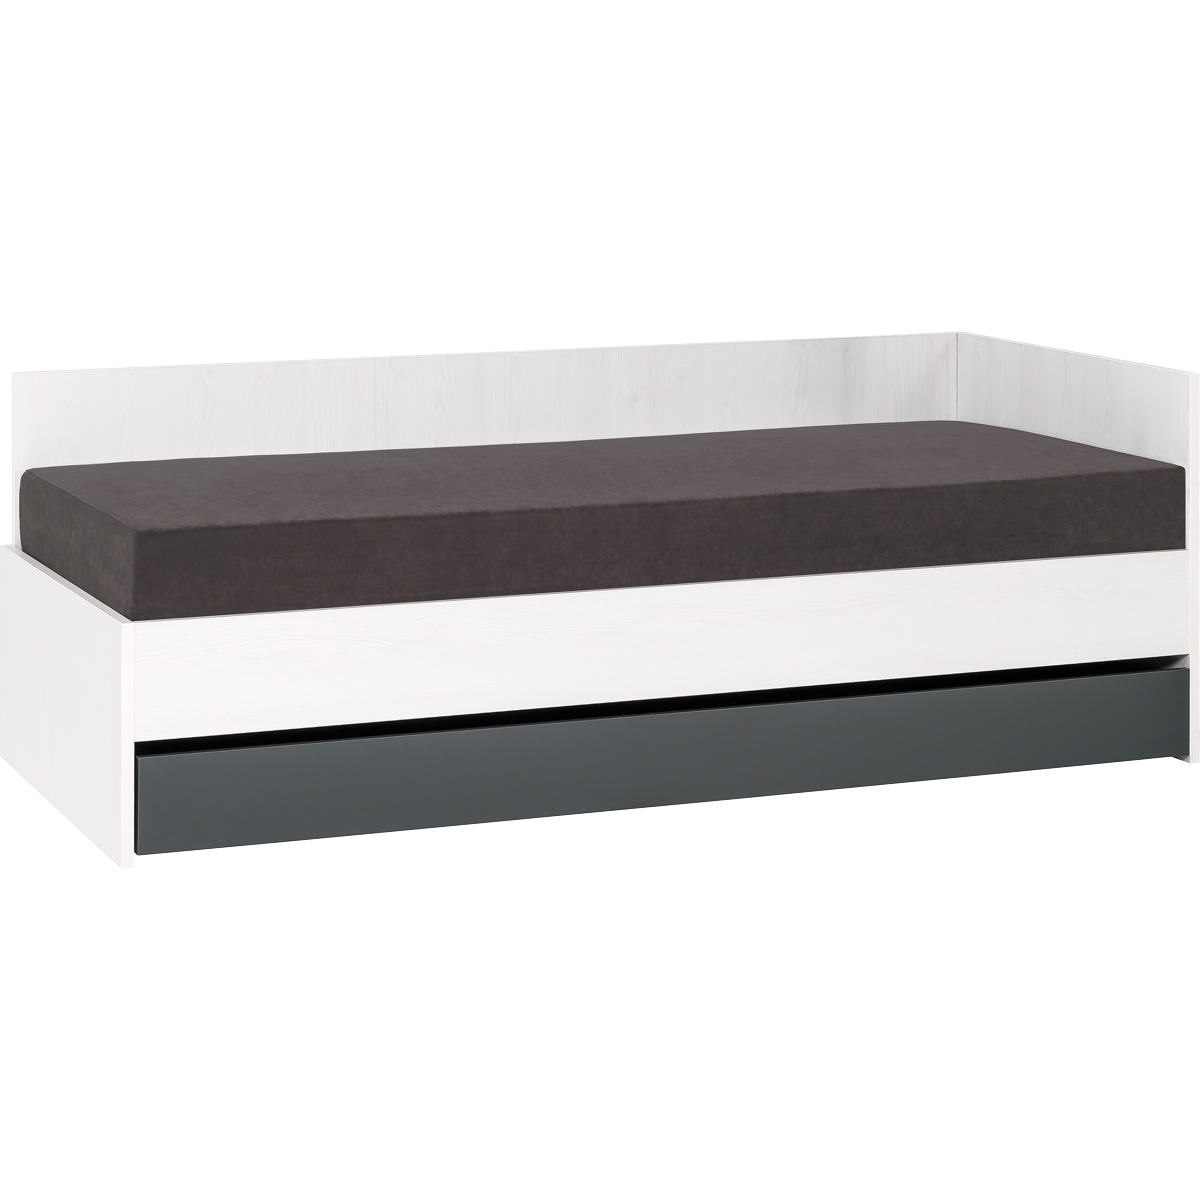 Vox Nest Sofabett 90x200 Larch Graphite Zum Toppreis